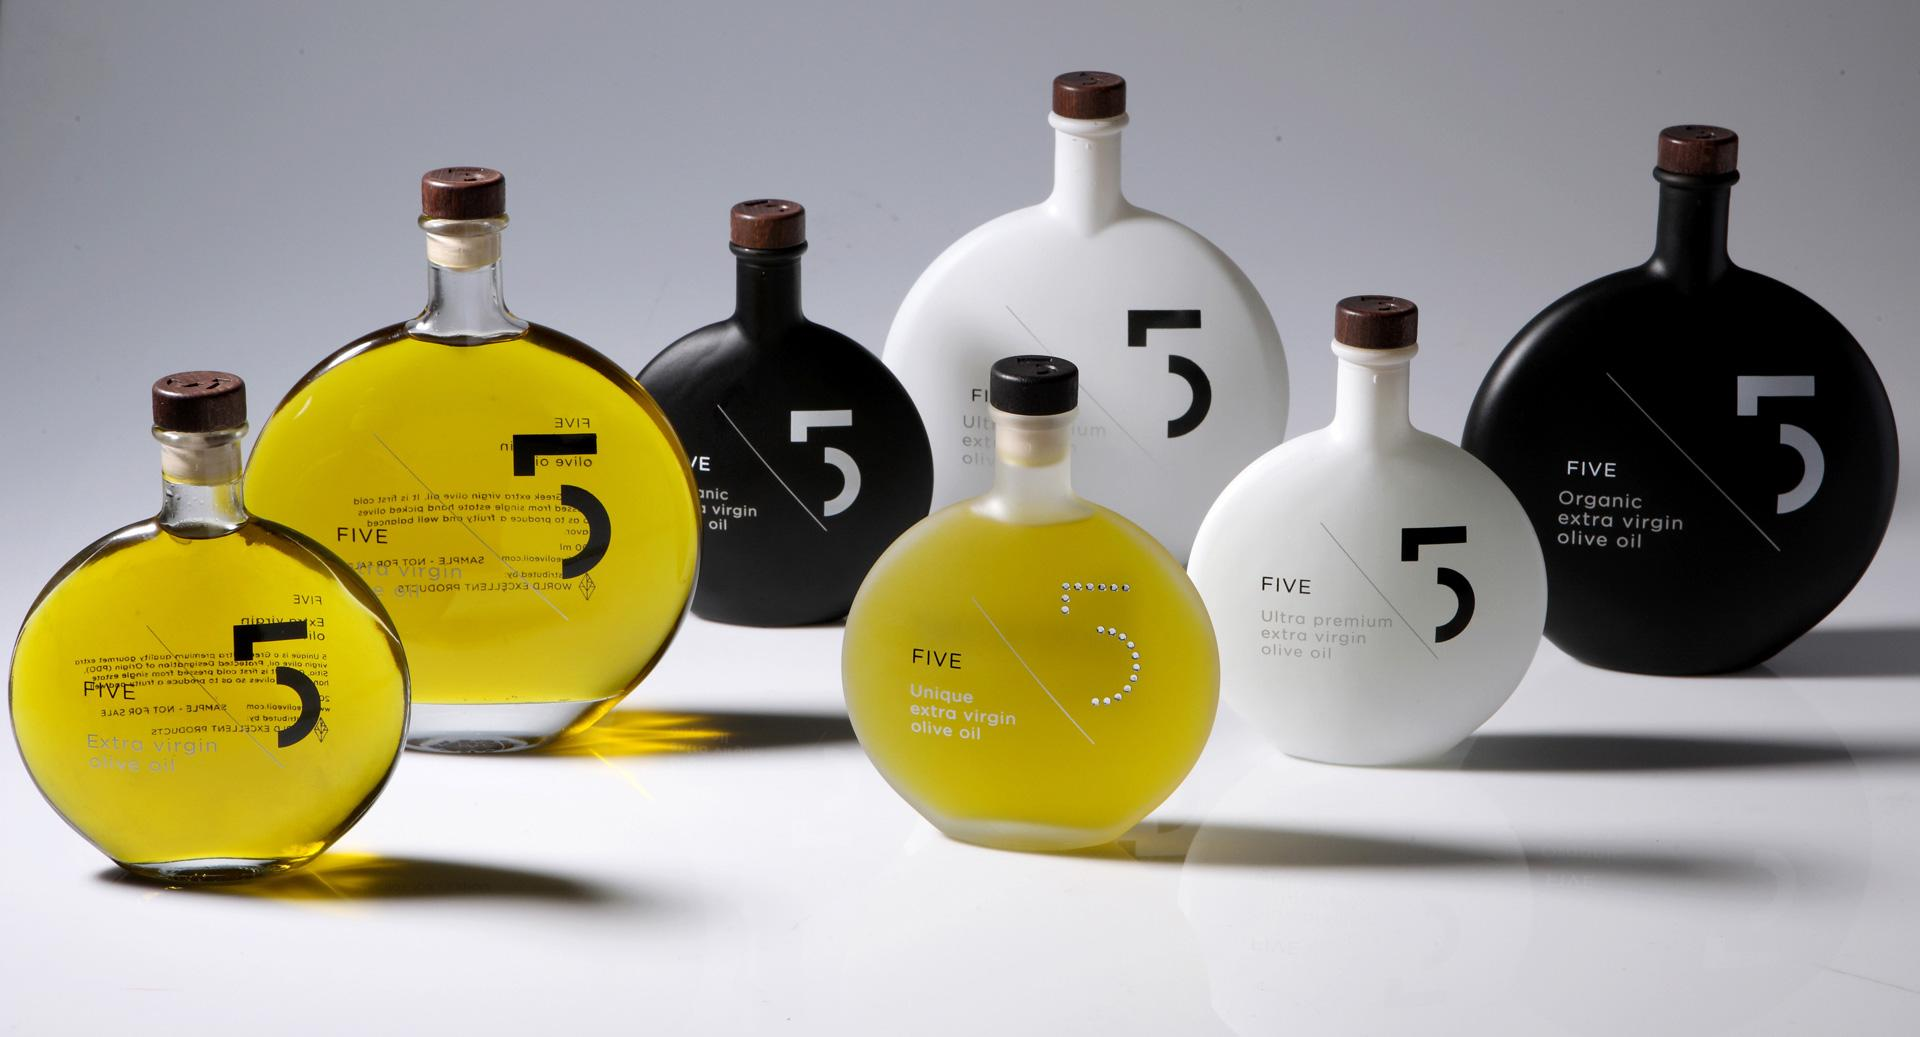 Five Olive Oil || Products || 5 Organic